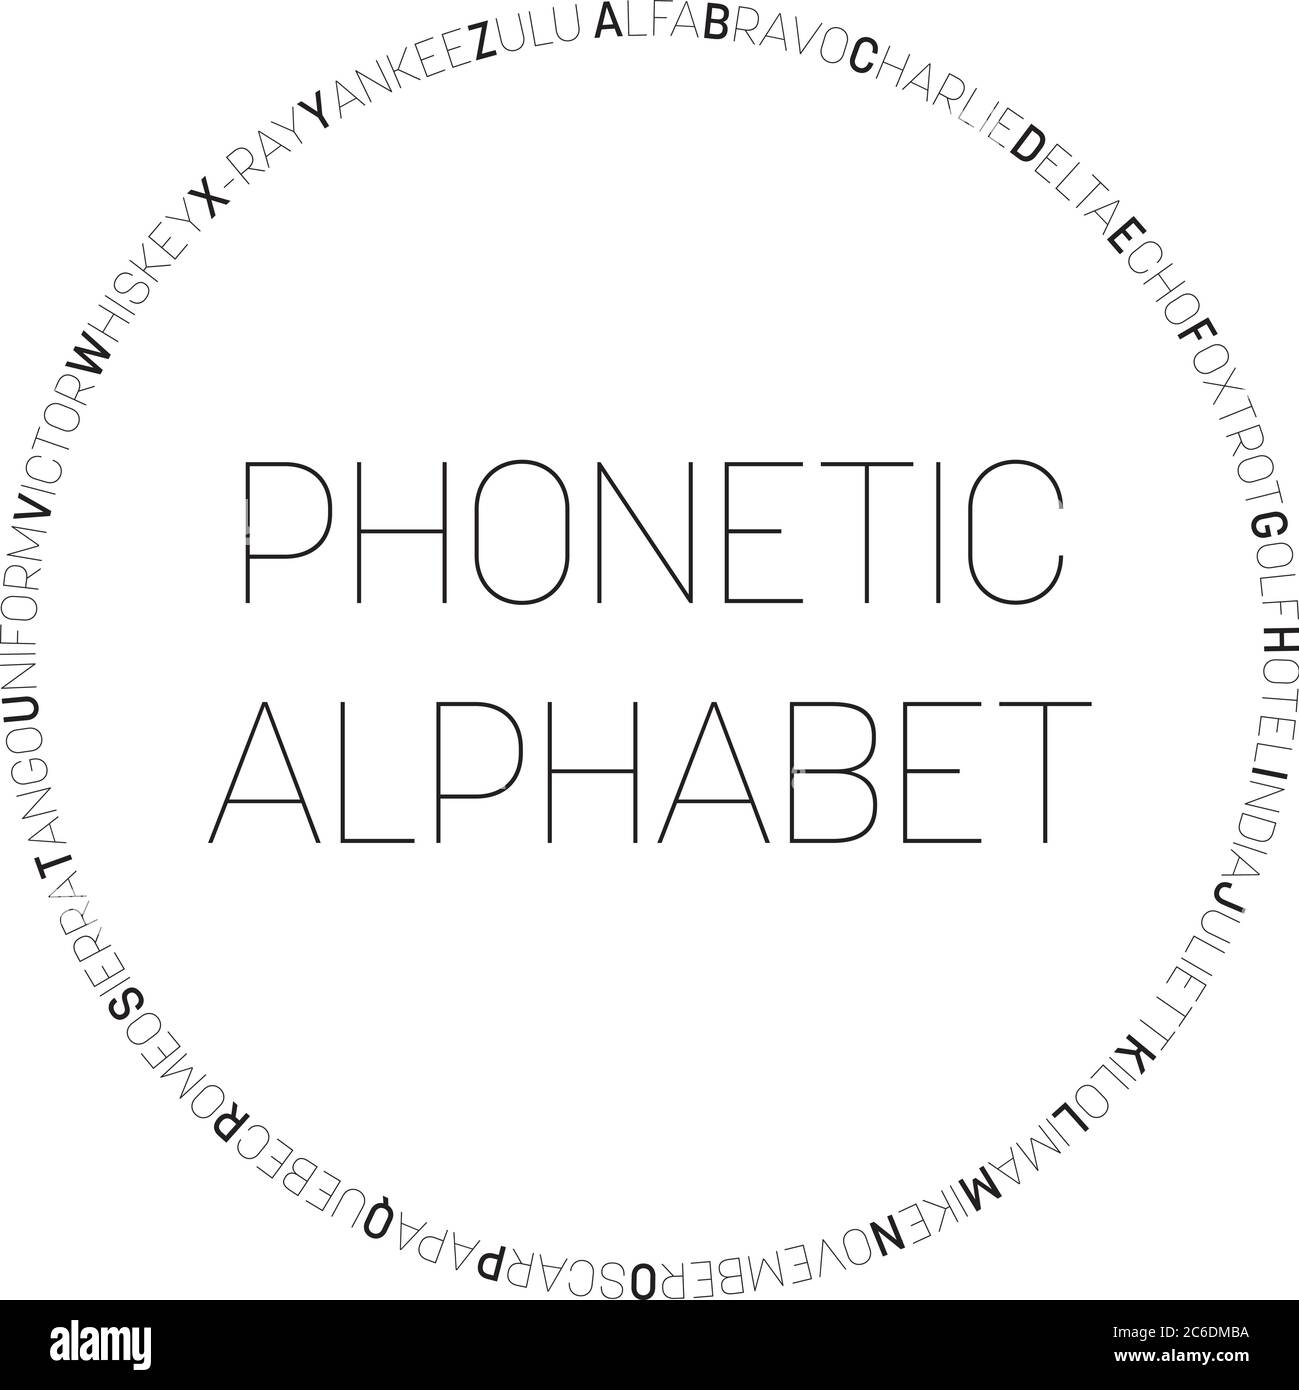 Phonetic High Resolution Stock Photography And Images Alamy